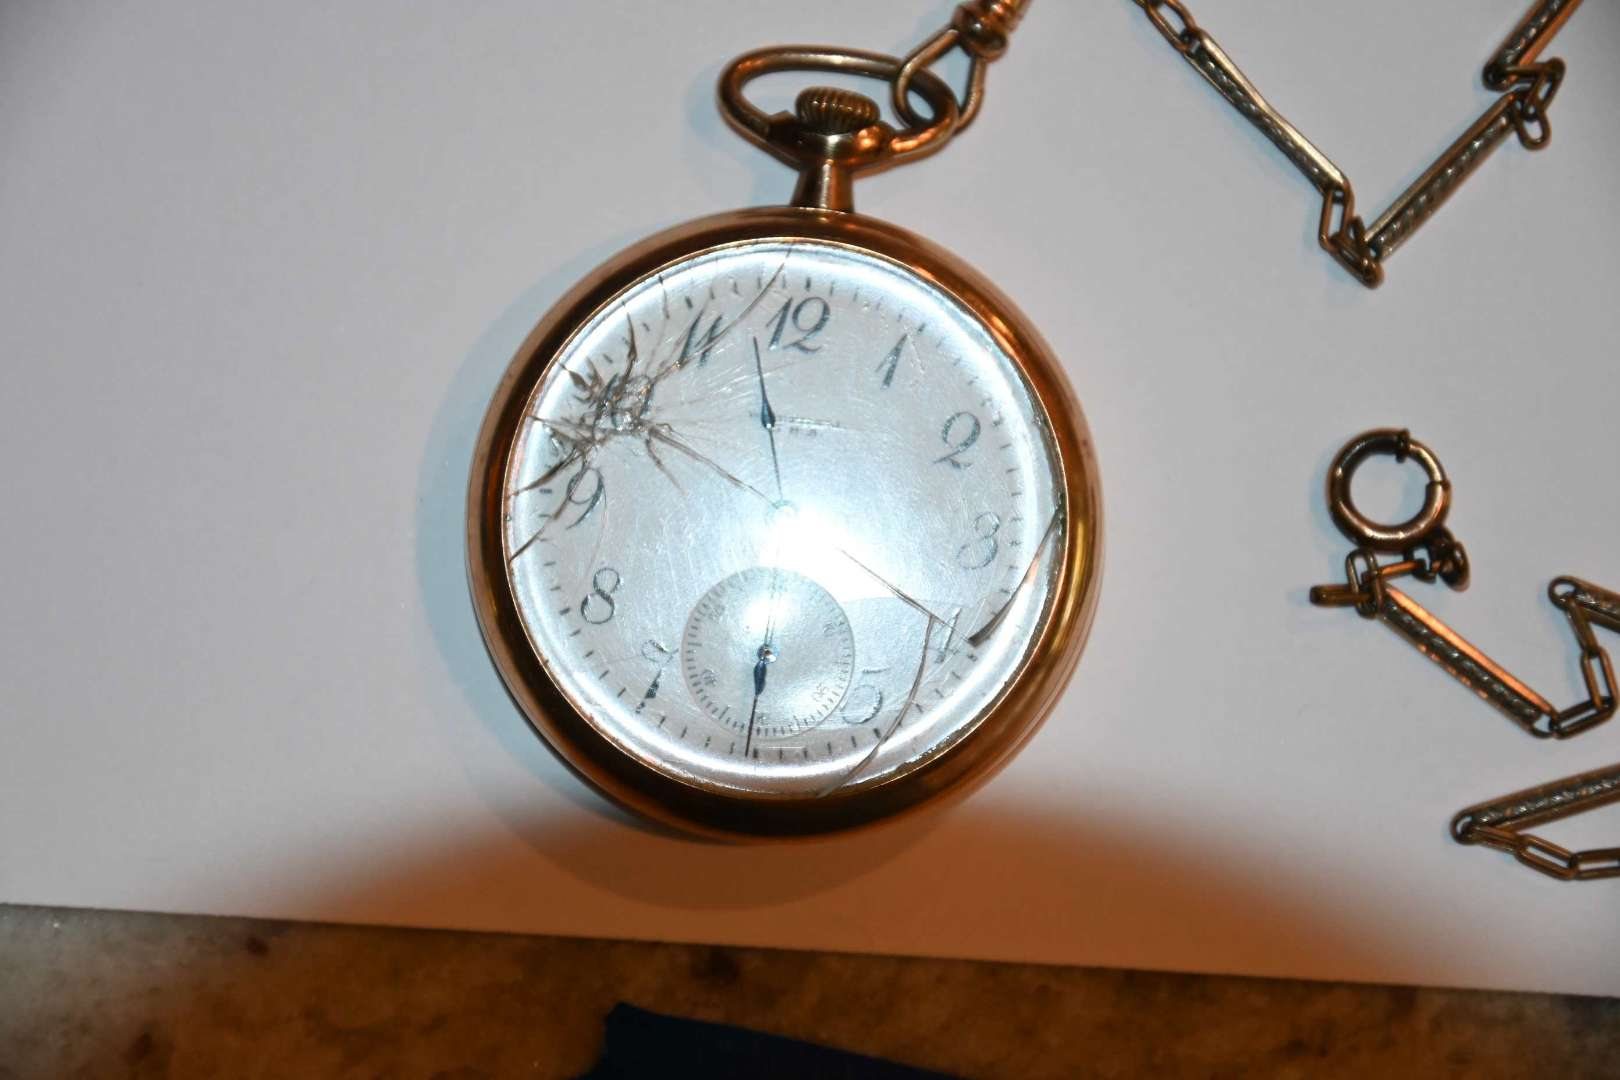 Lot # 181 WALTHAM 1917 pocket watch JBOSS 25 year GF case and gold filled chain